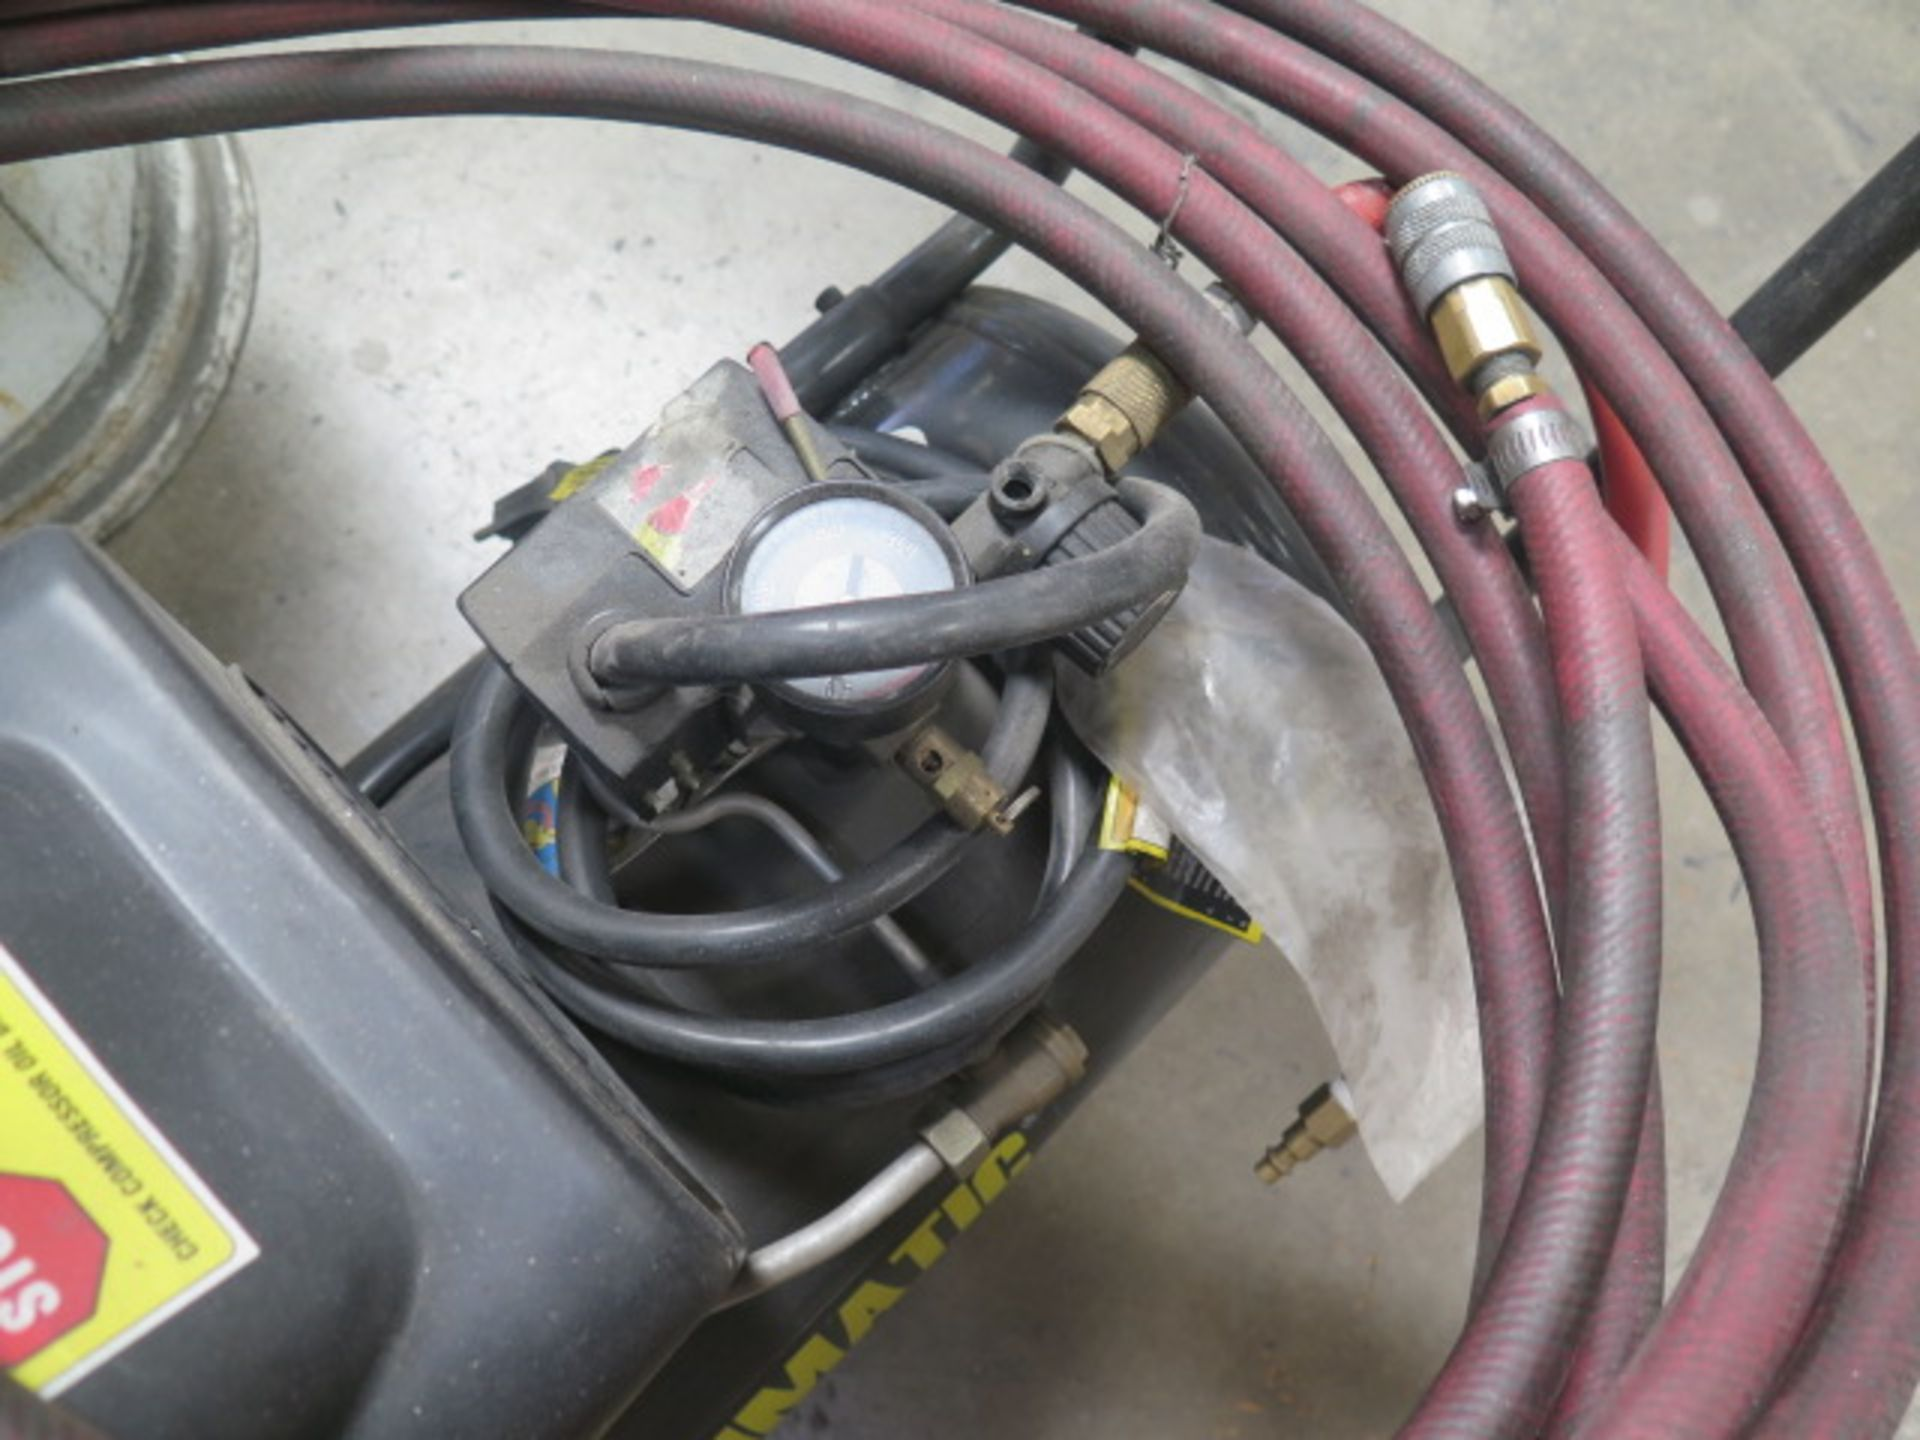 Cantral Pneumatic Portable Air Compressor (SOLD AS-IS - NO WARRANTY) - Image 4 of 4